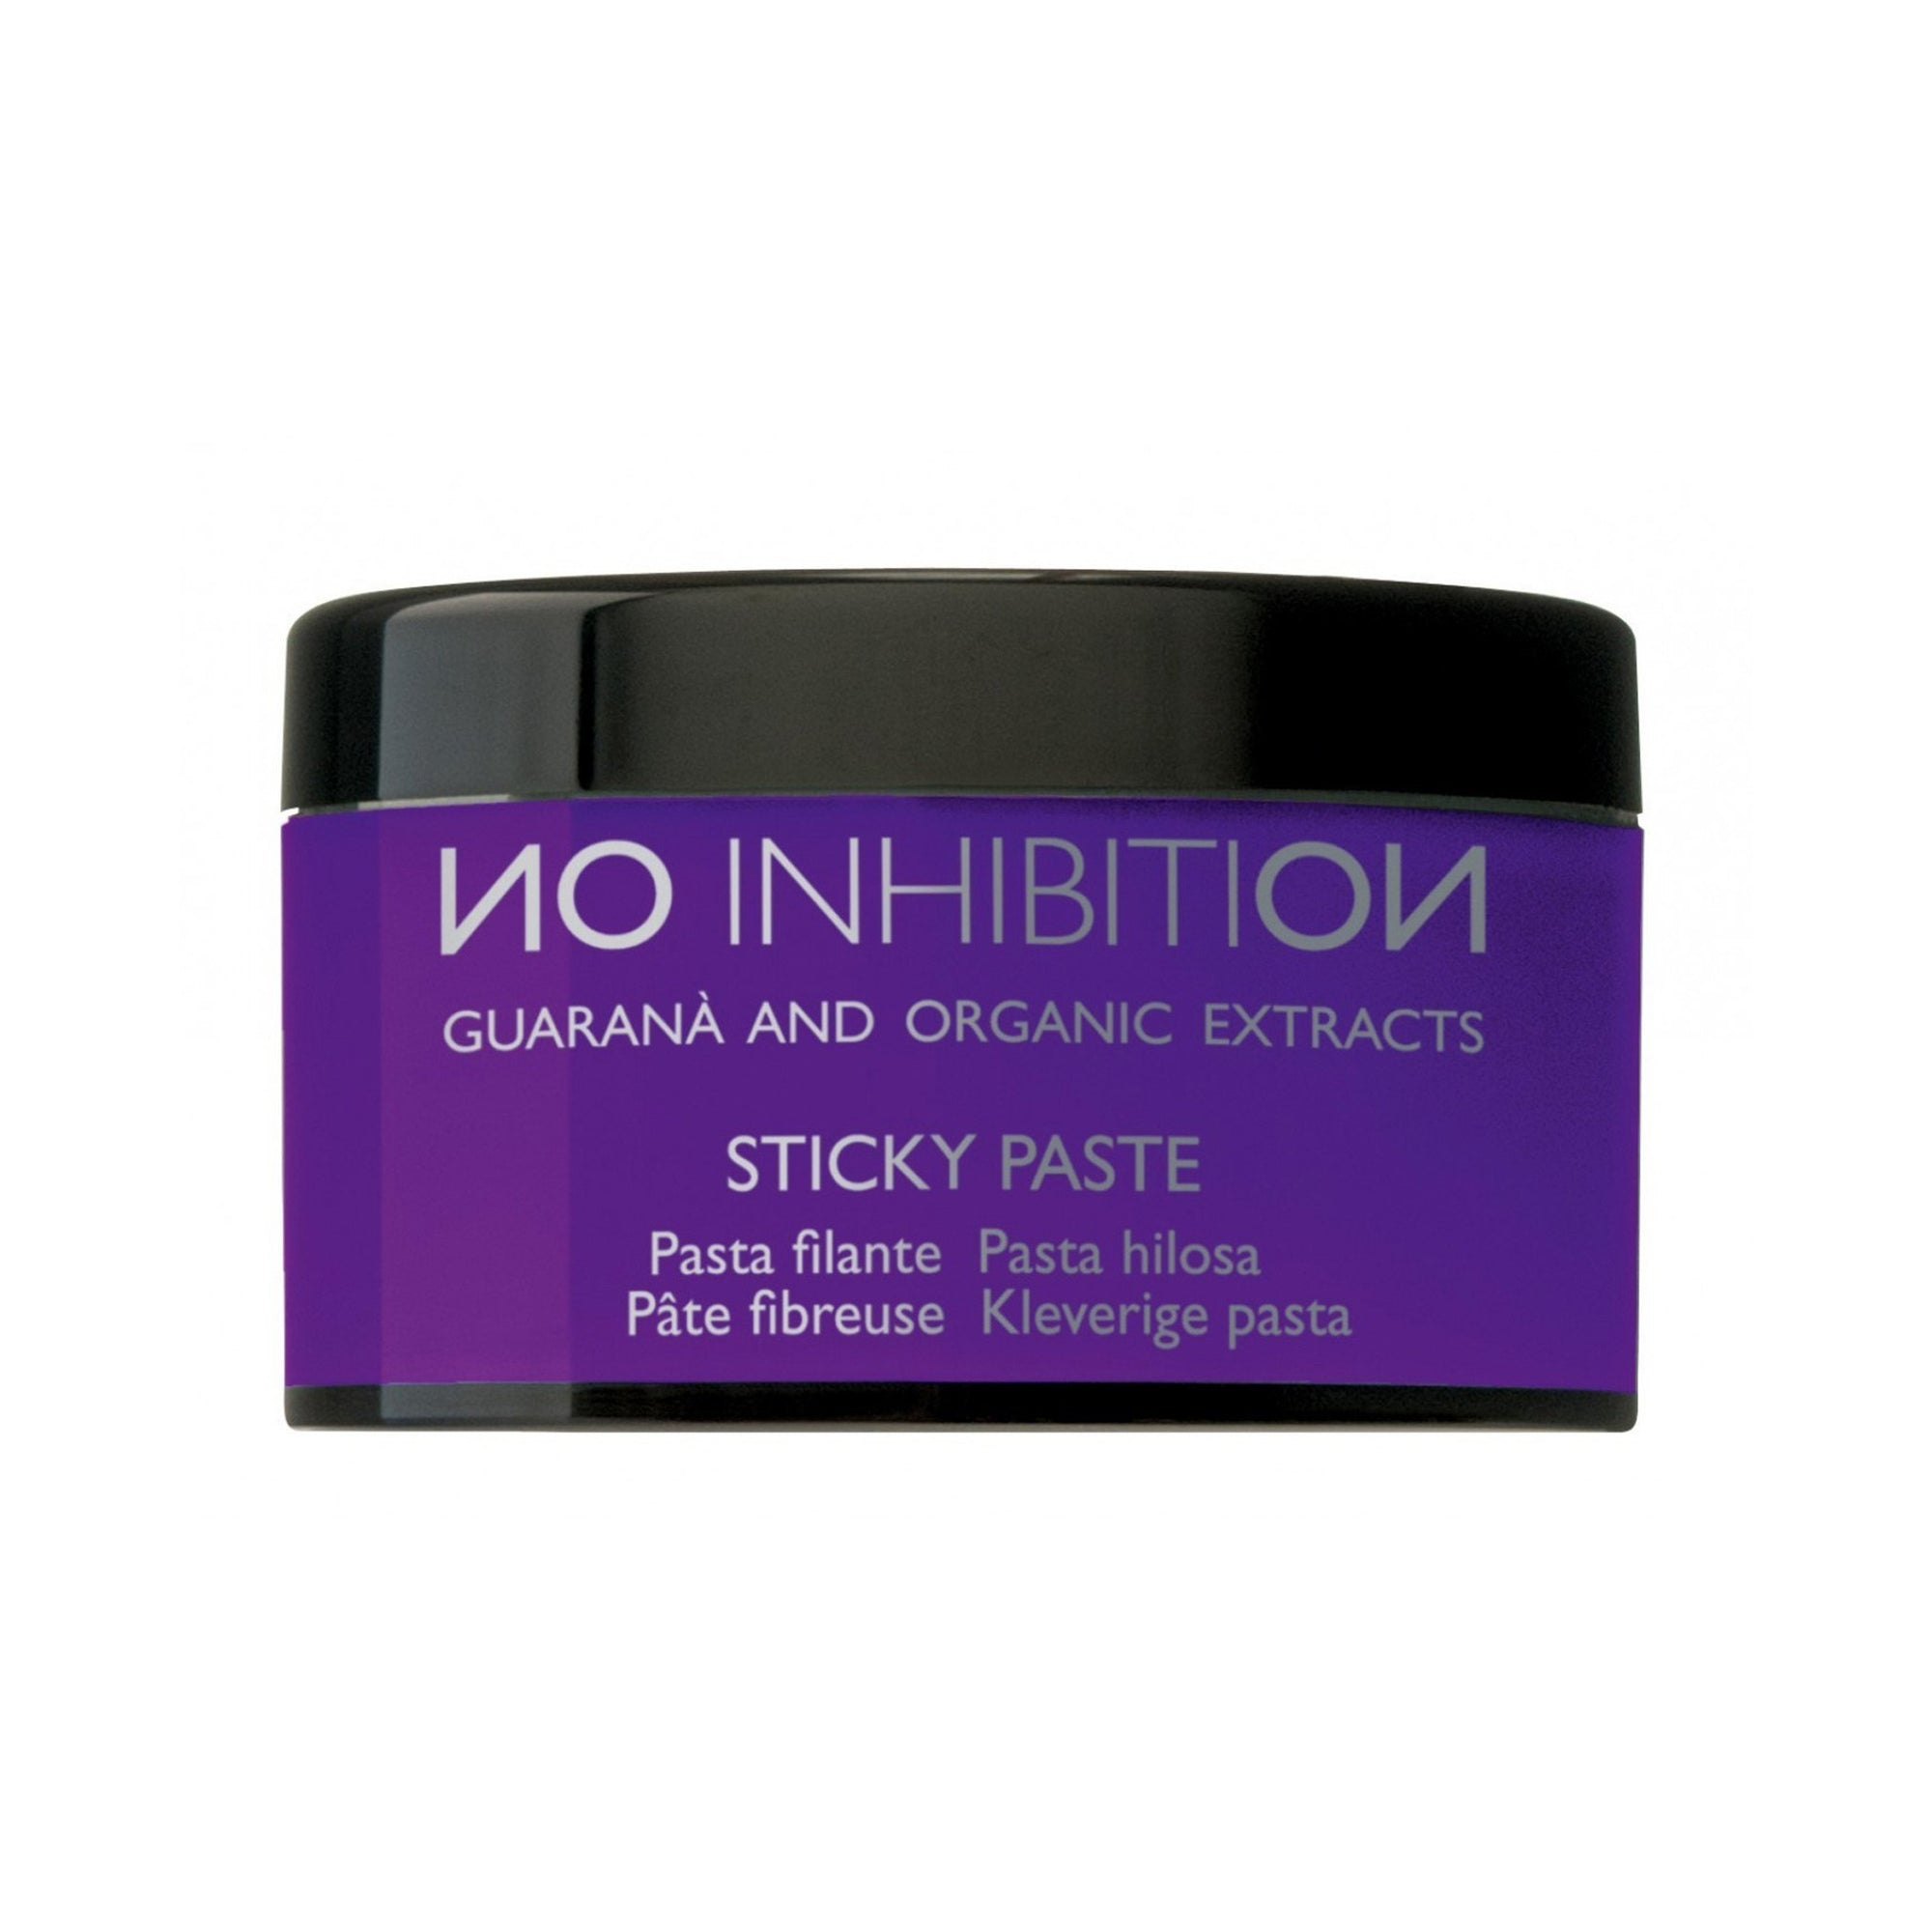 No Inhibition Sticky Paste 75ml